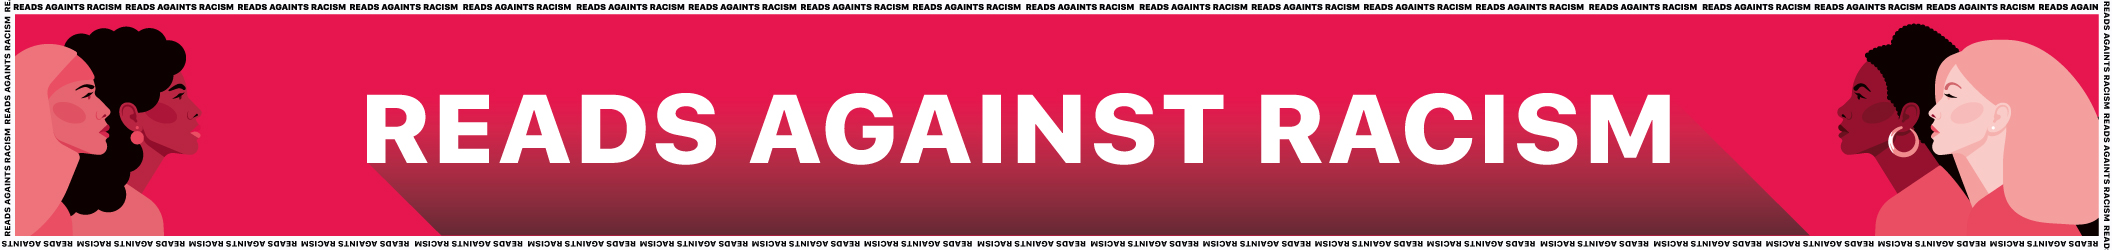 Reads Against Racism home page banner 2112x200